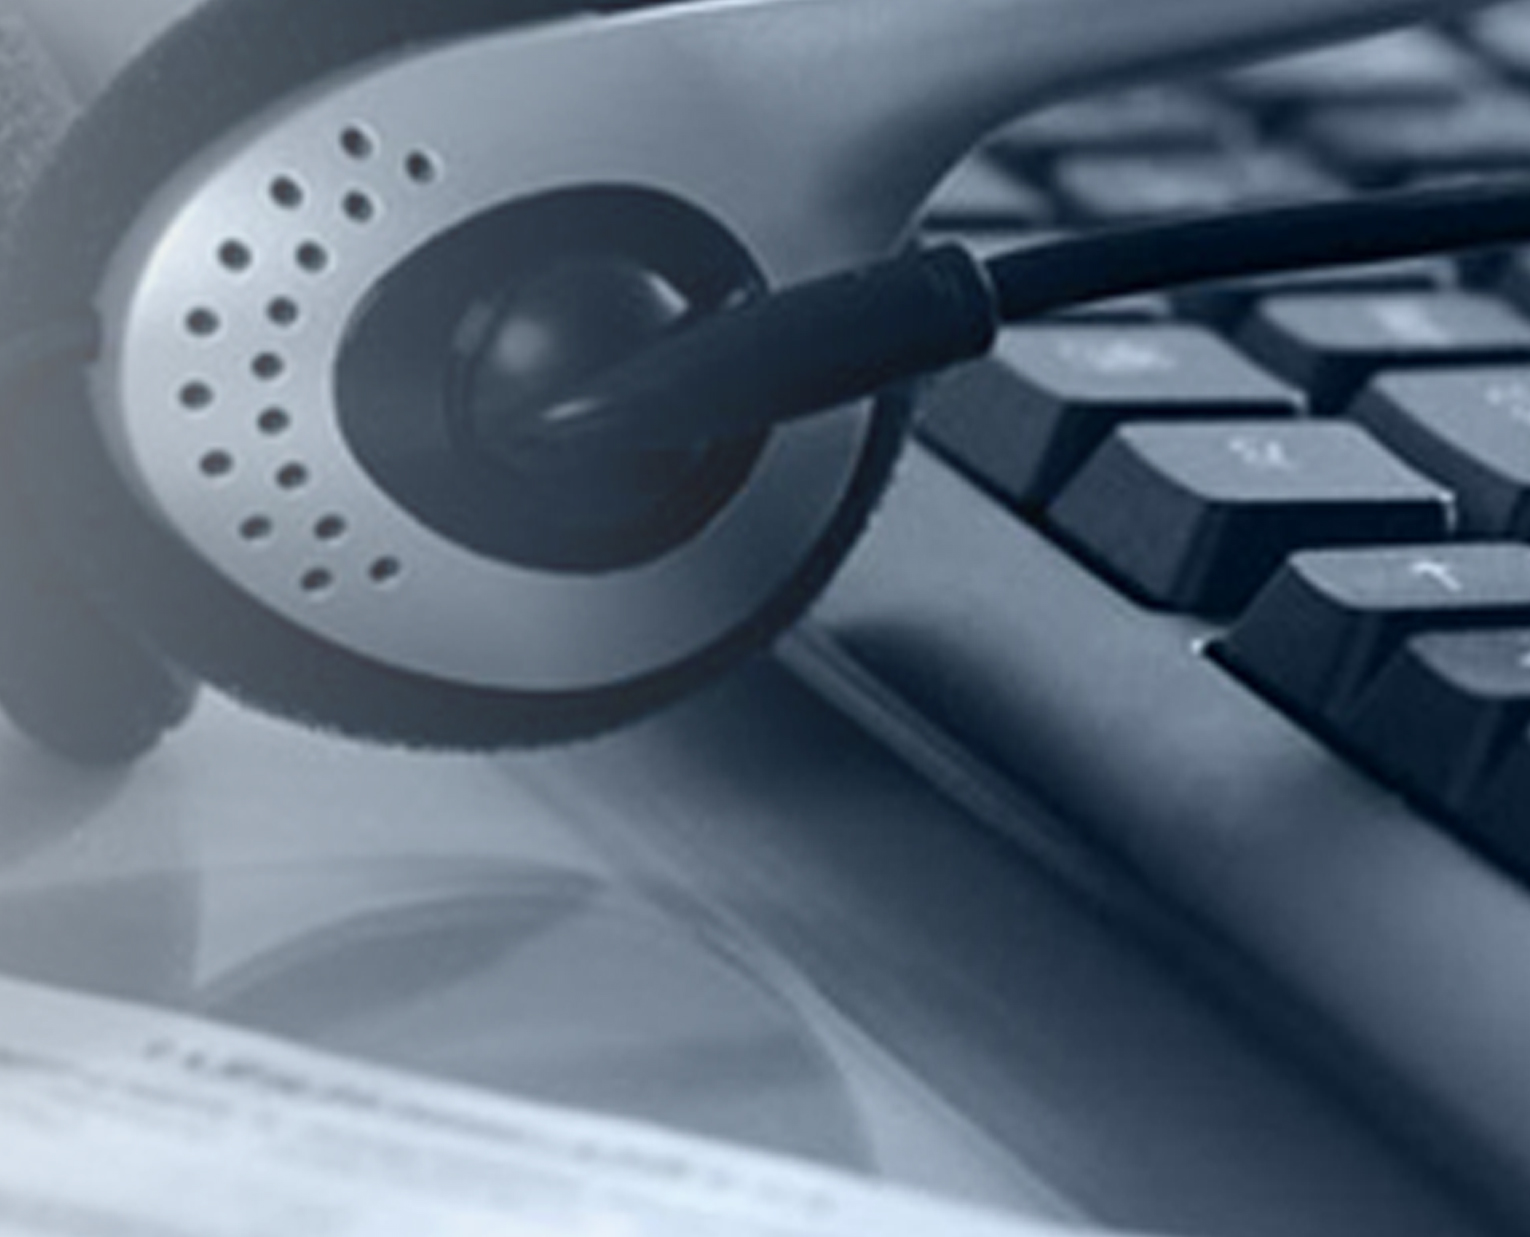 How to choose a good transcription service provider?